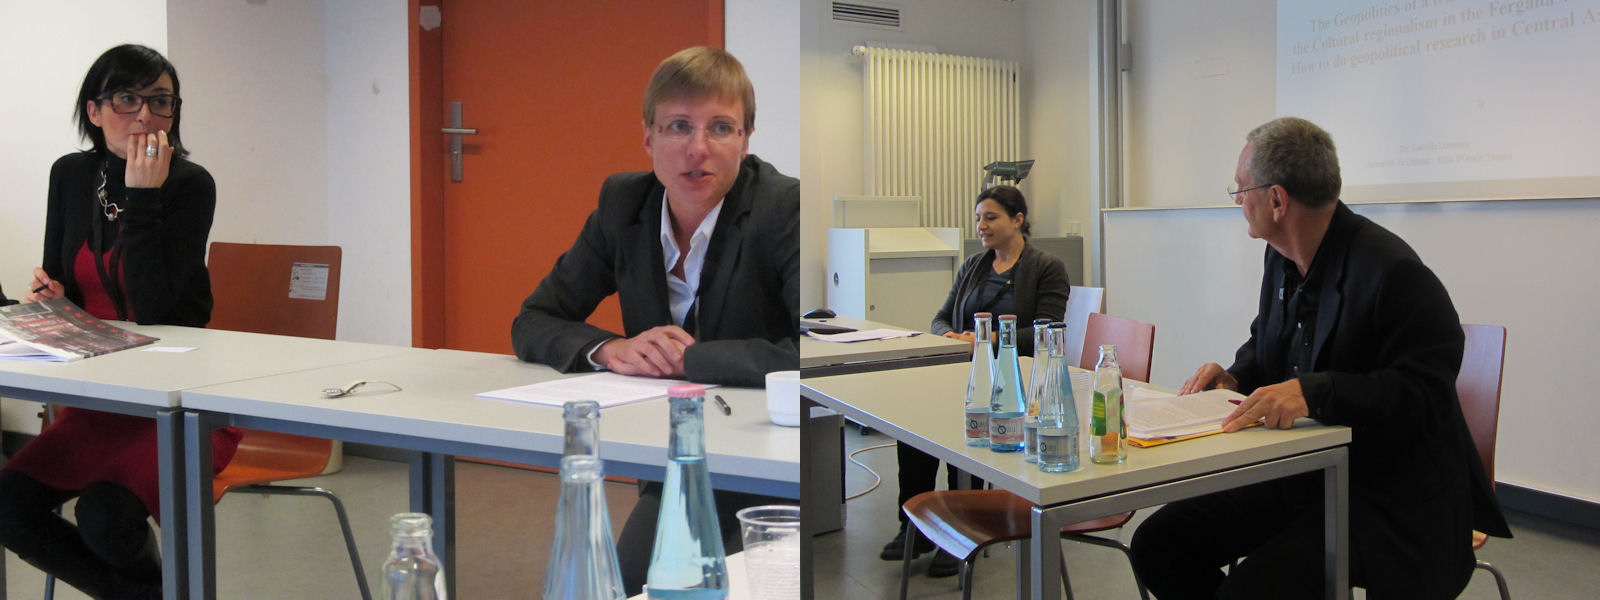 Von links: Antonelle Diana (International Institute für Asian Studies, Niederlande), Katarzyna Stoklosa, Isabella Damiani (Université du Littoral), Gerhard Besier